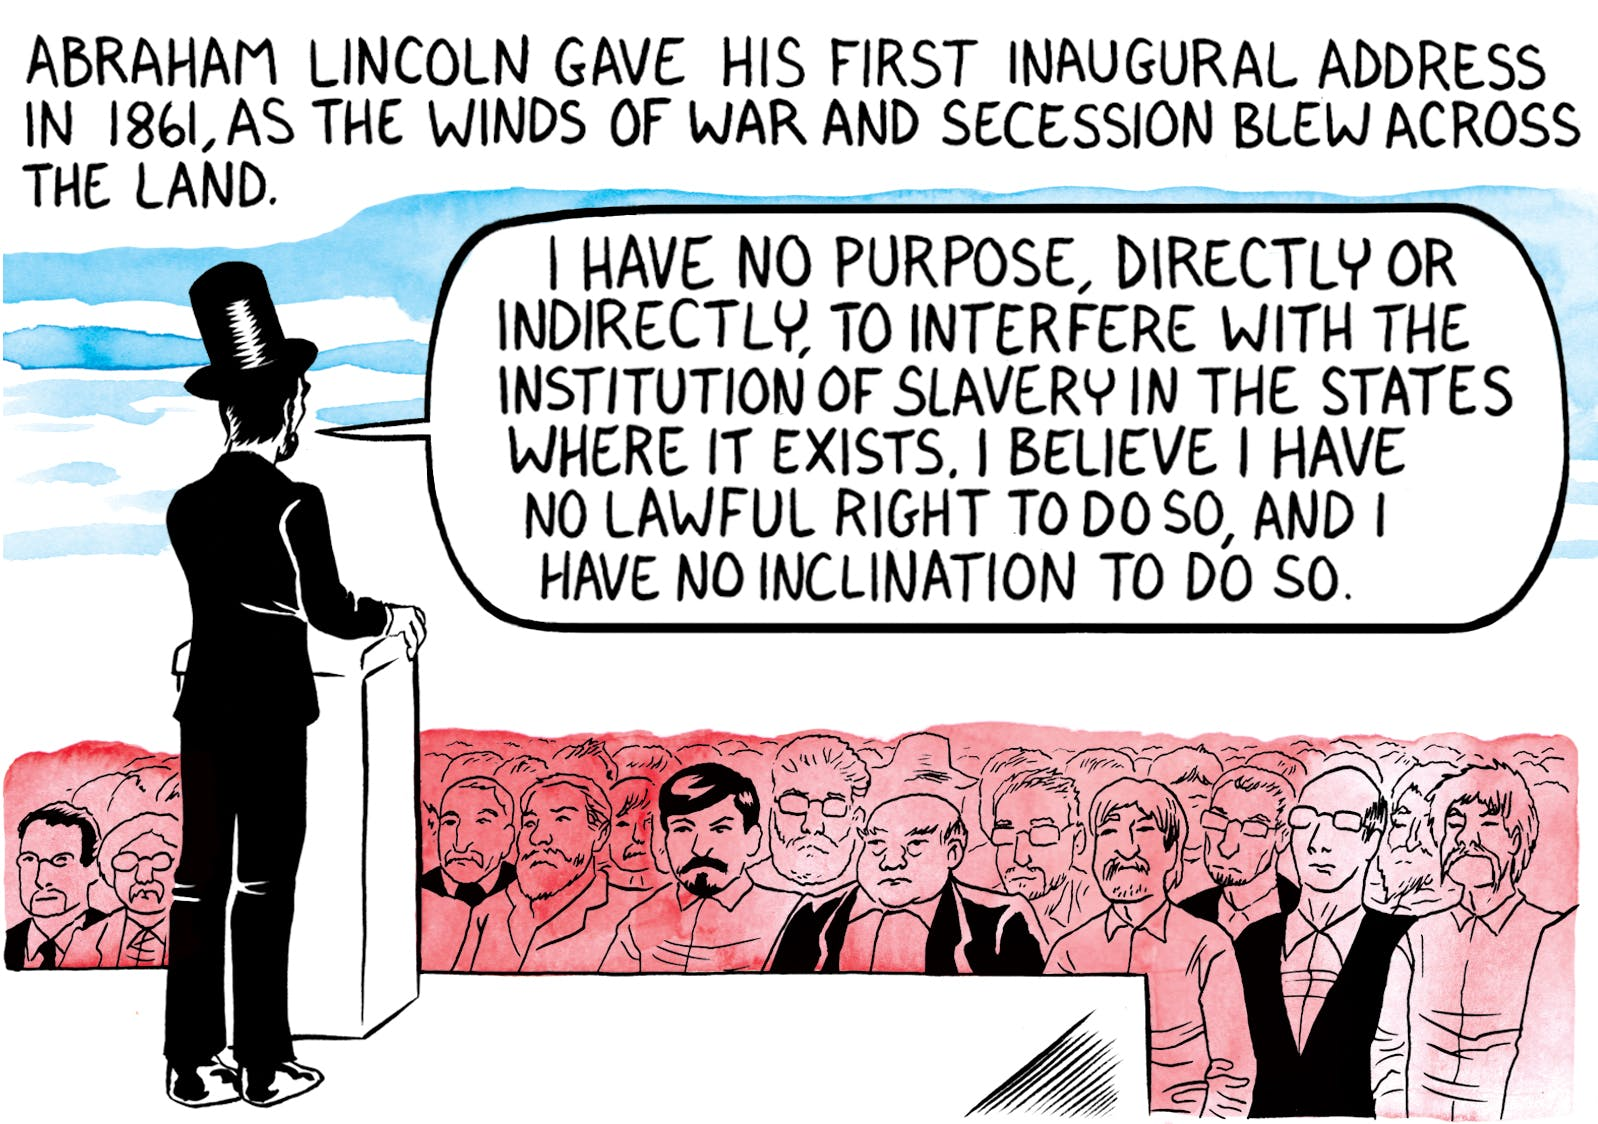 "Comic section, caption: Abraham Lincoln gave his first inaugural address in 1861, as the winds of war and secession blew across the land. In speech bubble: ""I have no purpose, directly or indirectly, to interfere with the institution of slavery in the states where it exists. I believe I have no lawful right to do so, and I have no inclination to do so."